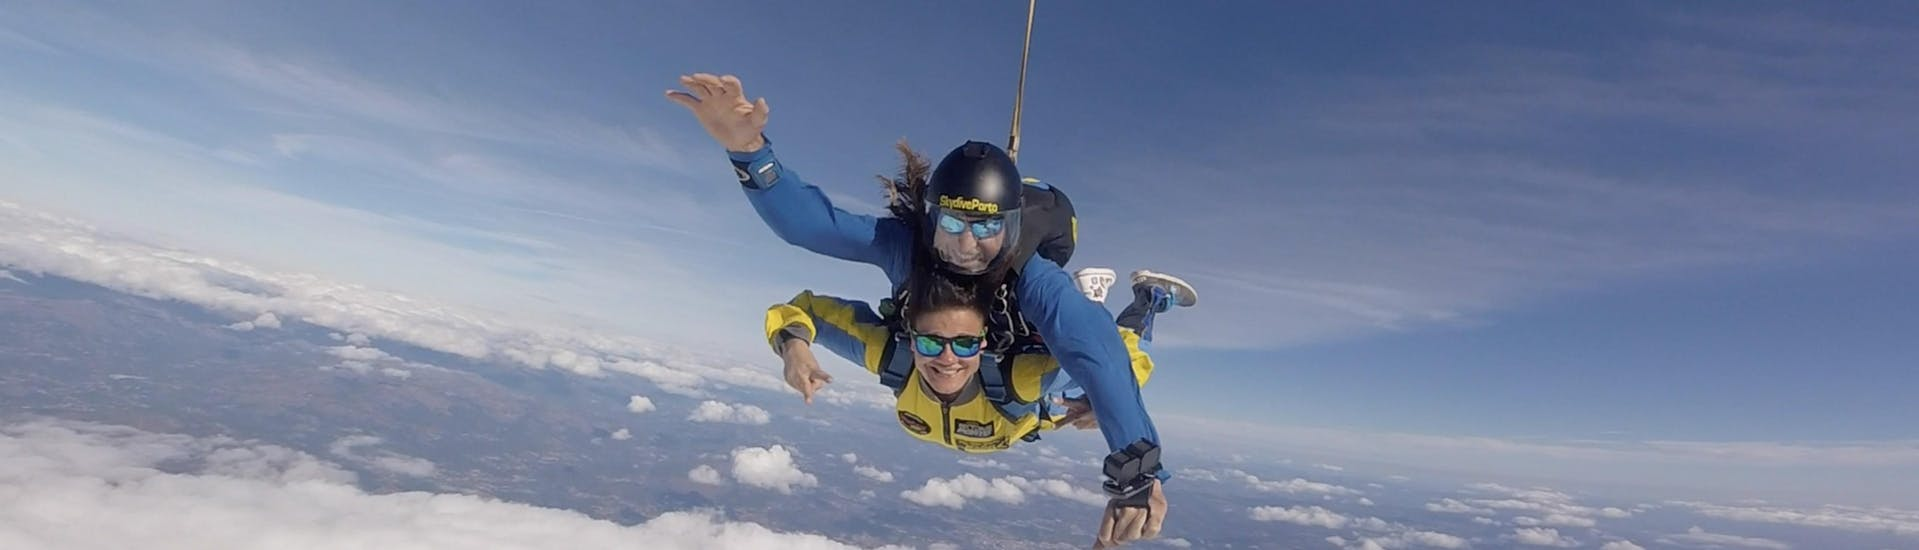 A tandem master from Skydive Porto and his Student are smiling at the camera as the fall freely through the skies while skydiving in Porto.